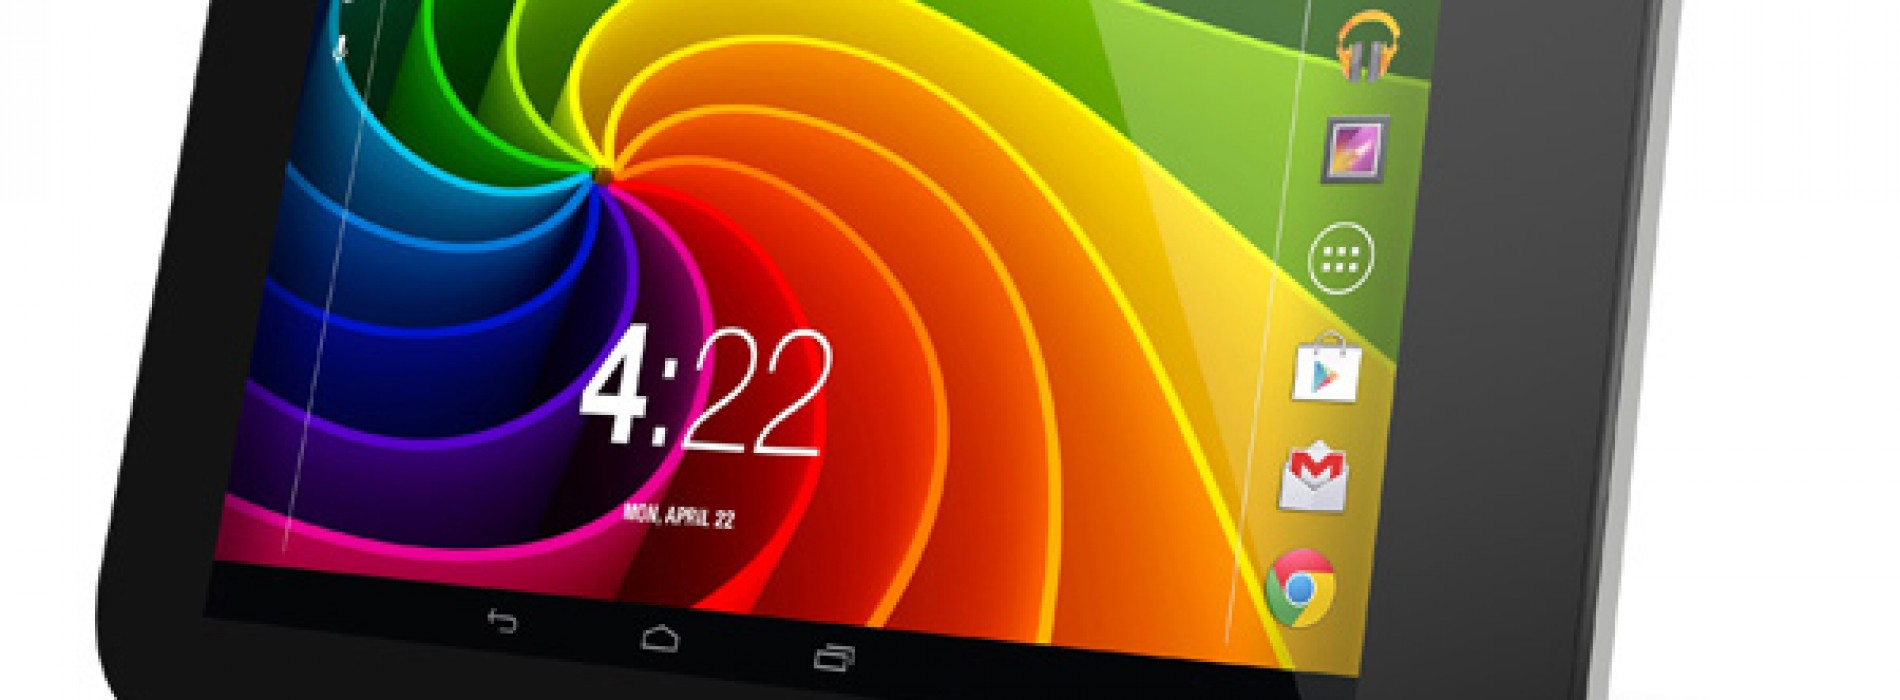 Toshiba Excite 7 review